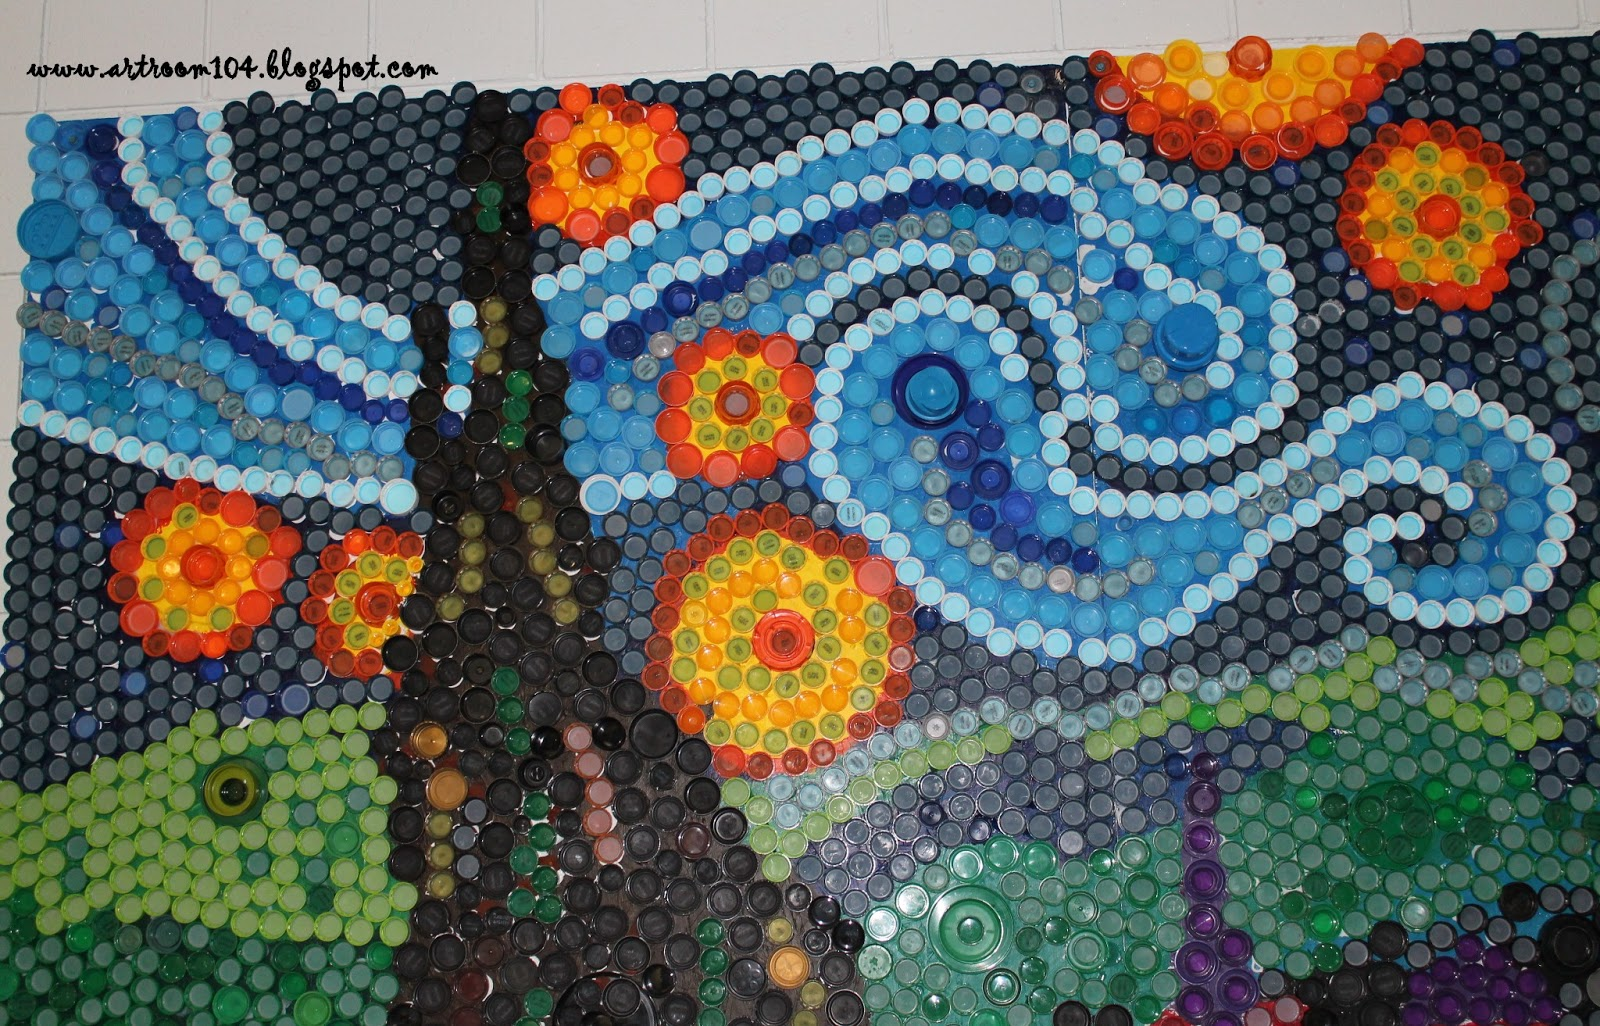 art room 104 finished bottle cap mural starry night